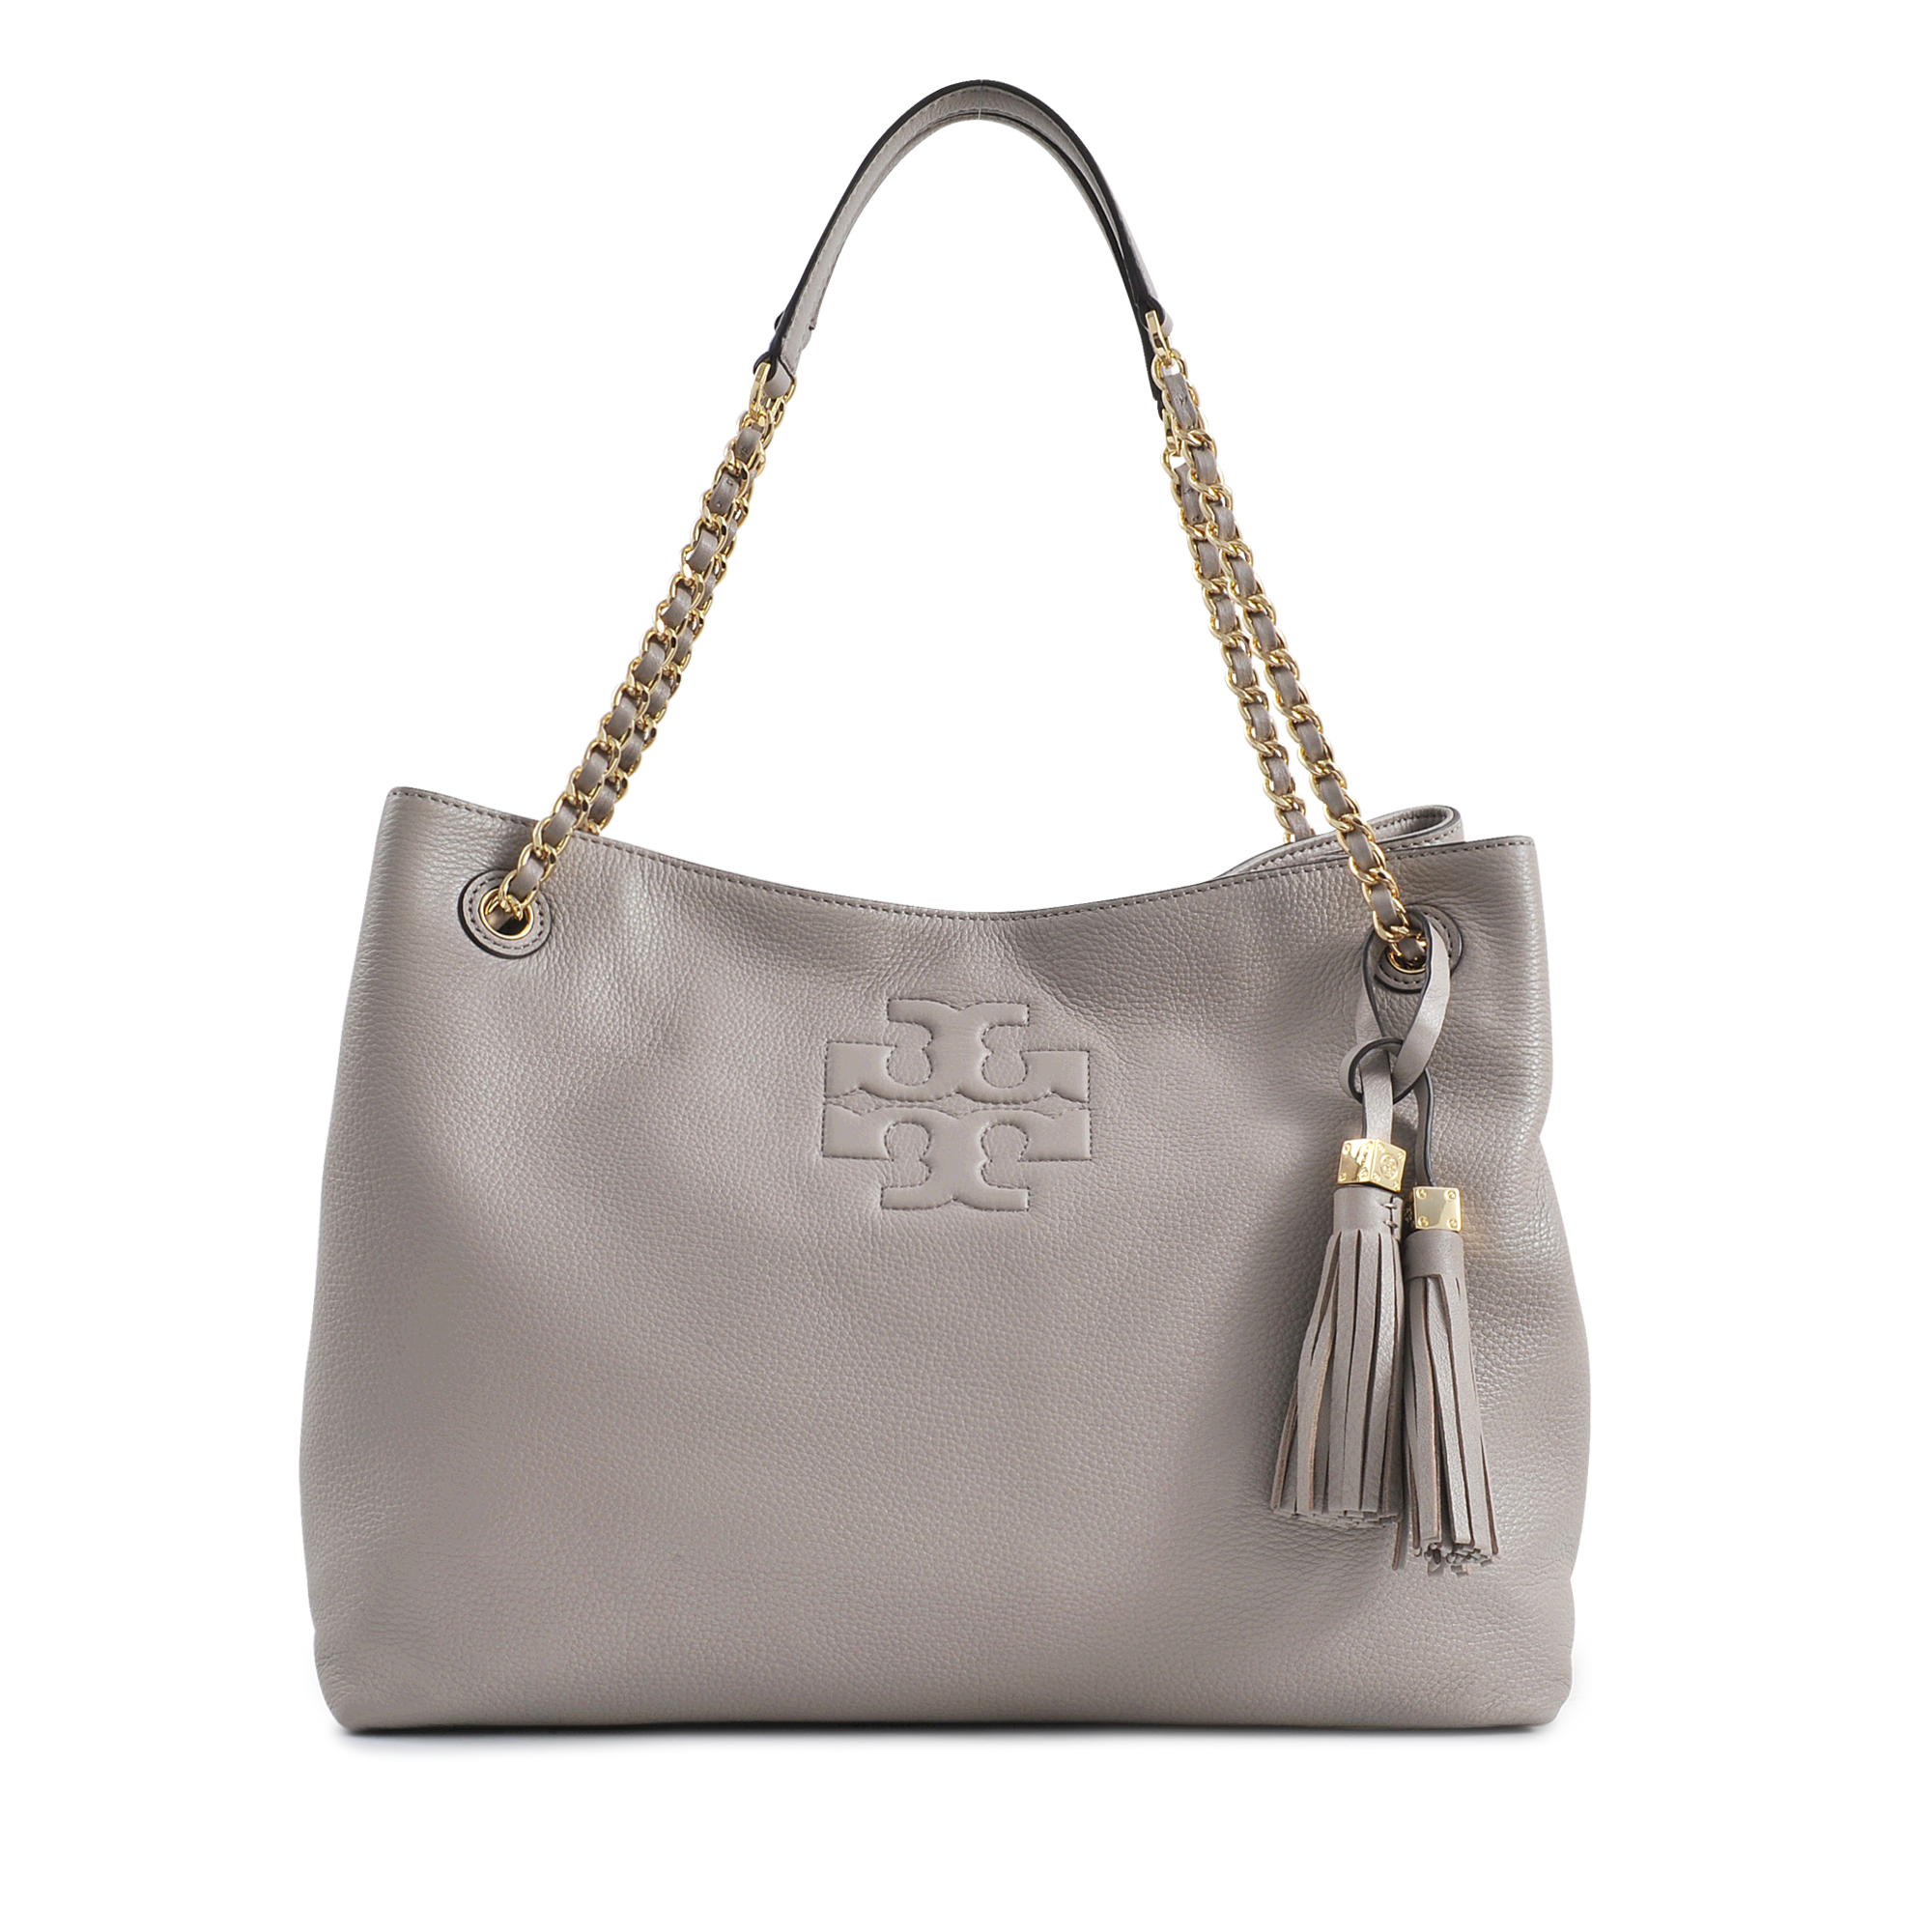 255260873201 Tory Burch Thea Chain Shoulder Slouchy Tote in Gray - Lyst